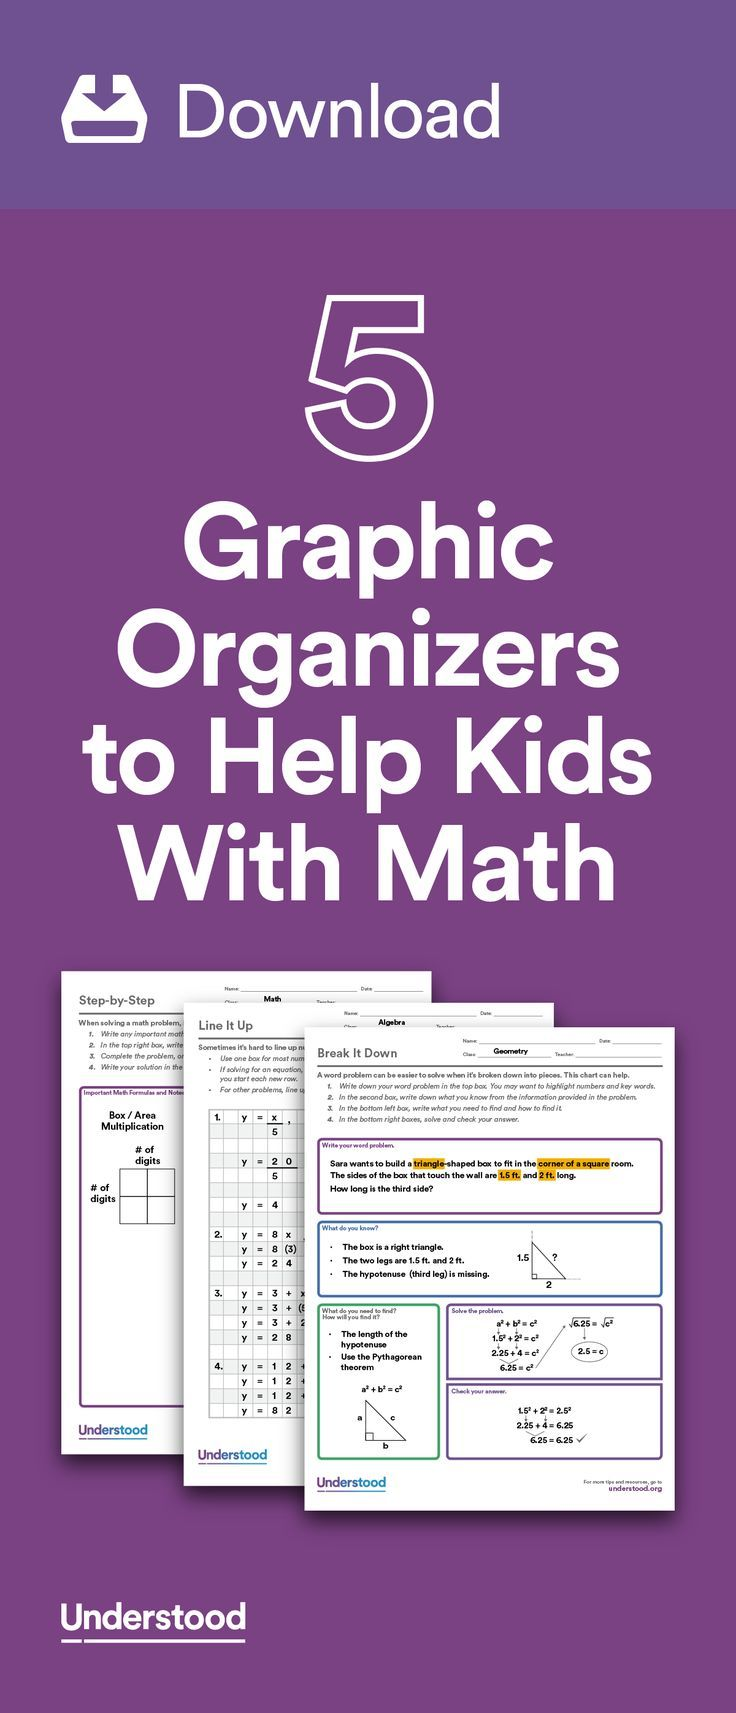 If your child has trouble with math because of dyscalculia or other learning and attention issues, graphic organizers can help. Graphic organizers allow kids to break down math problems into sequential steps.